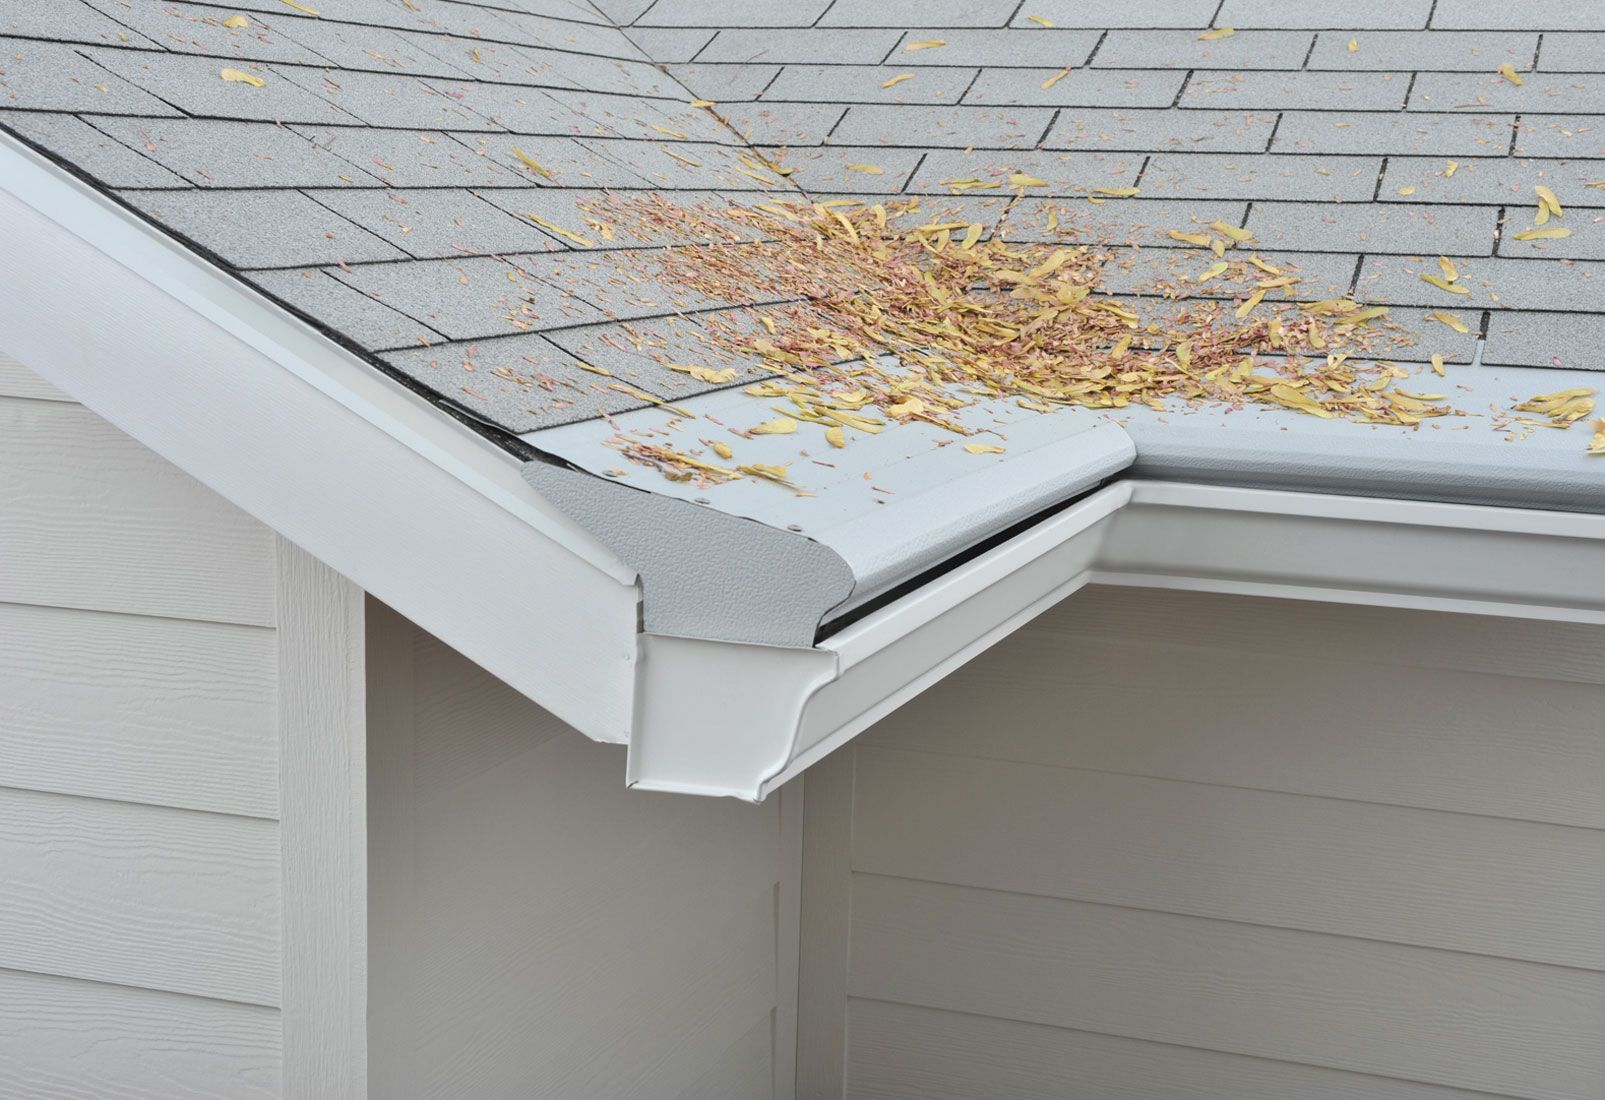 Pin By Asher Lasting Exteriors On Gutters Gutter Protection Gutter Guard Gutter Protection Foam Gutter Guards